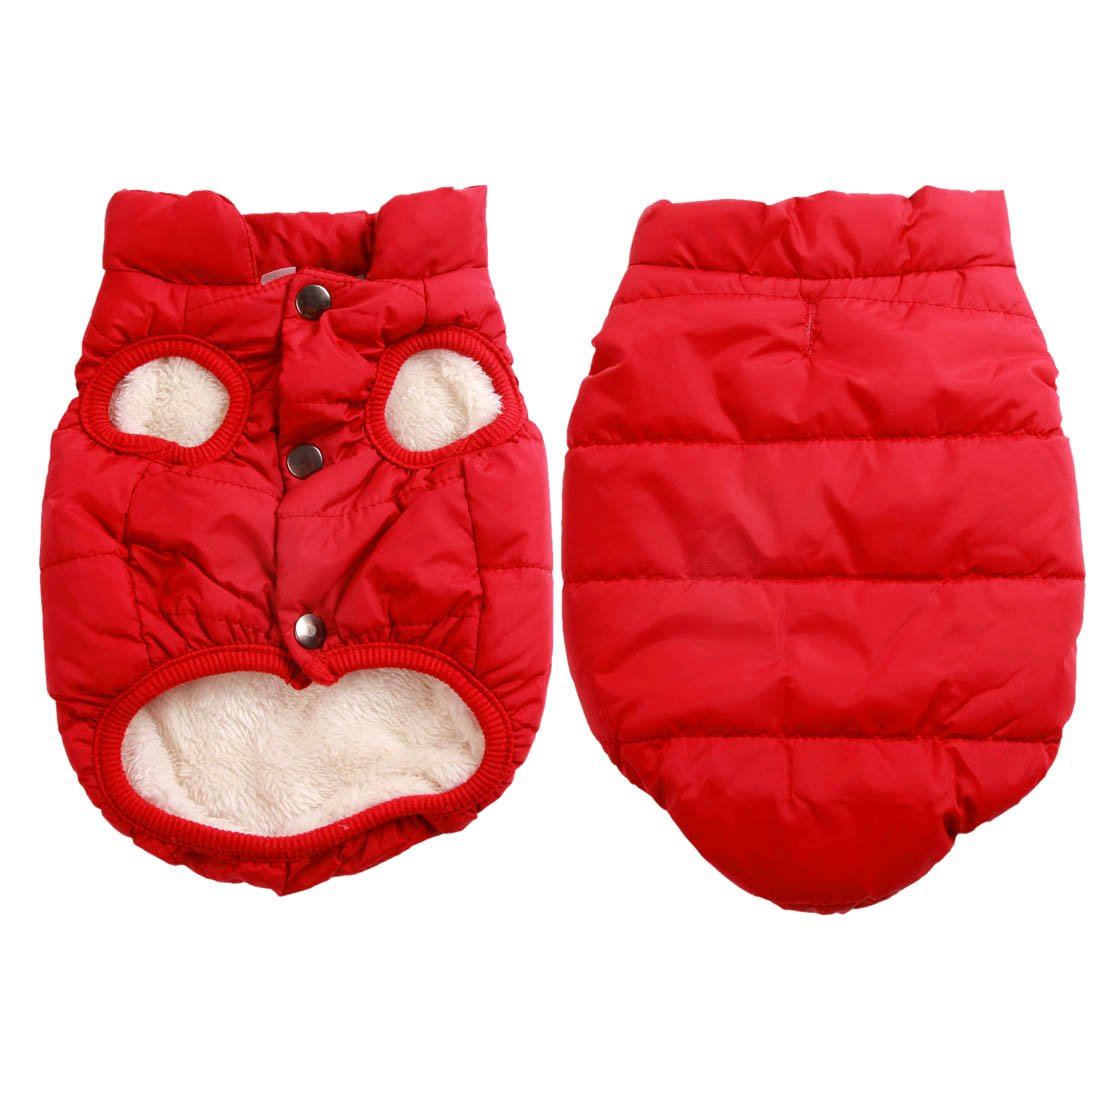 Red L Red L JoyDaog 2 Layers Fleece Lined Warm Dog Jacket for Winter Cold Weather,Soft Windproof Medium Dog Coat, Red L